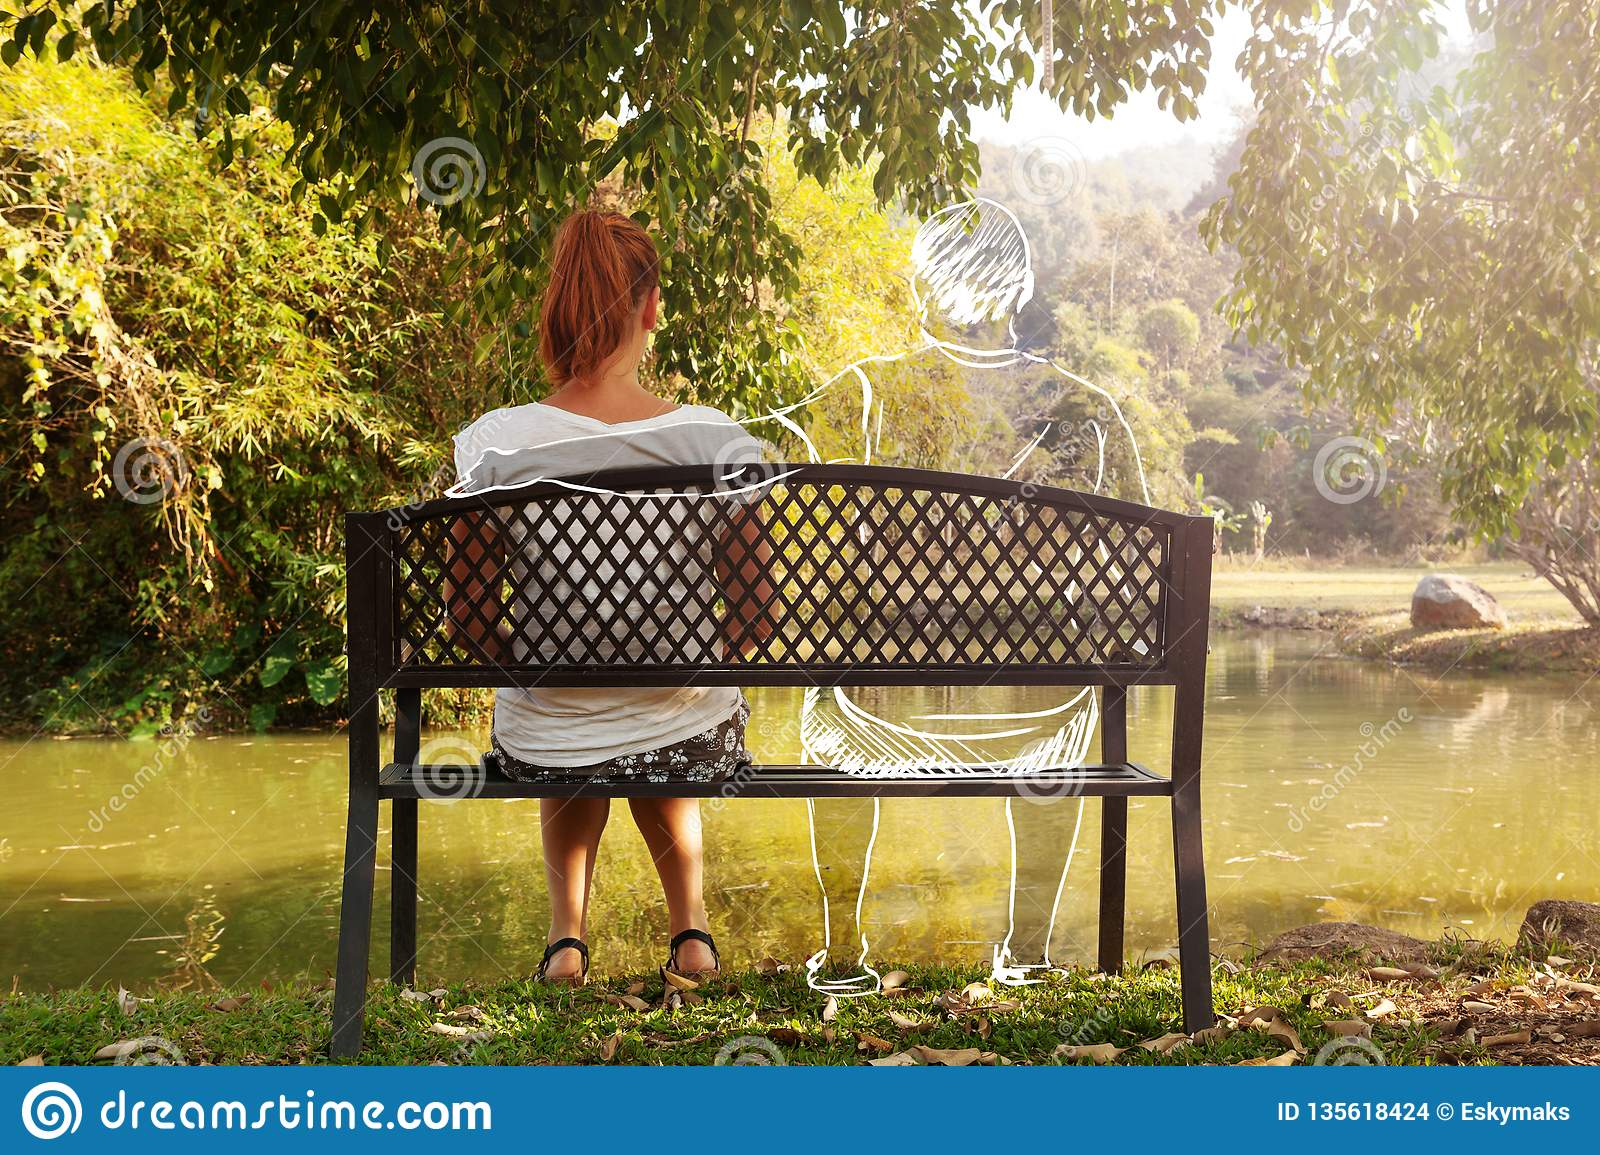 Depressed and sad young woman sitting alone on bench in the park